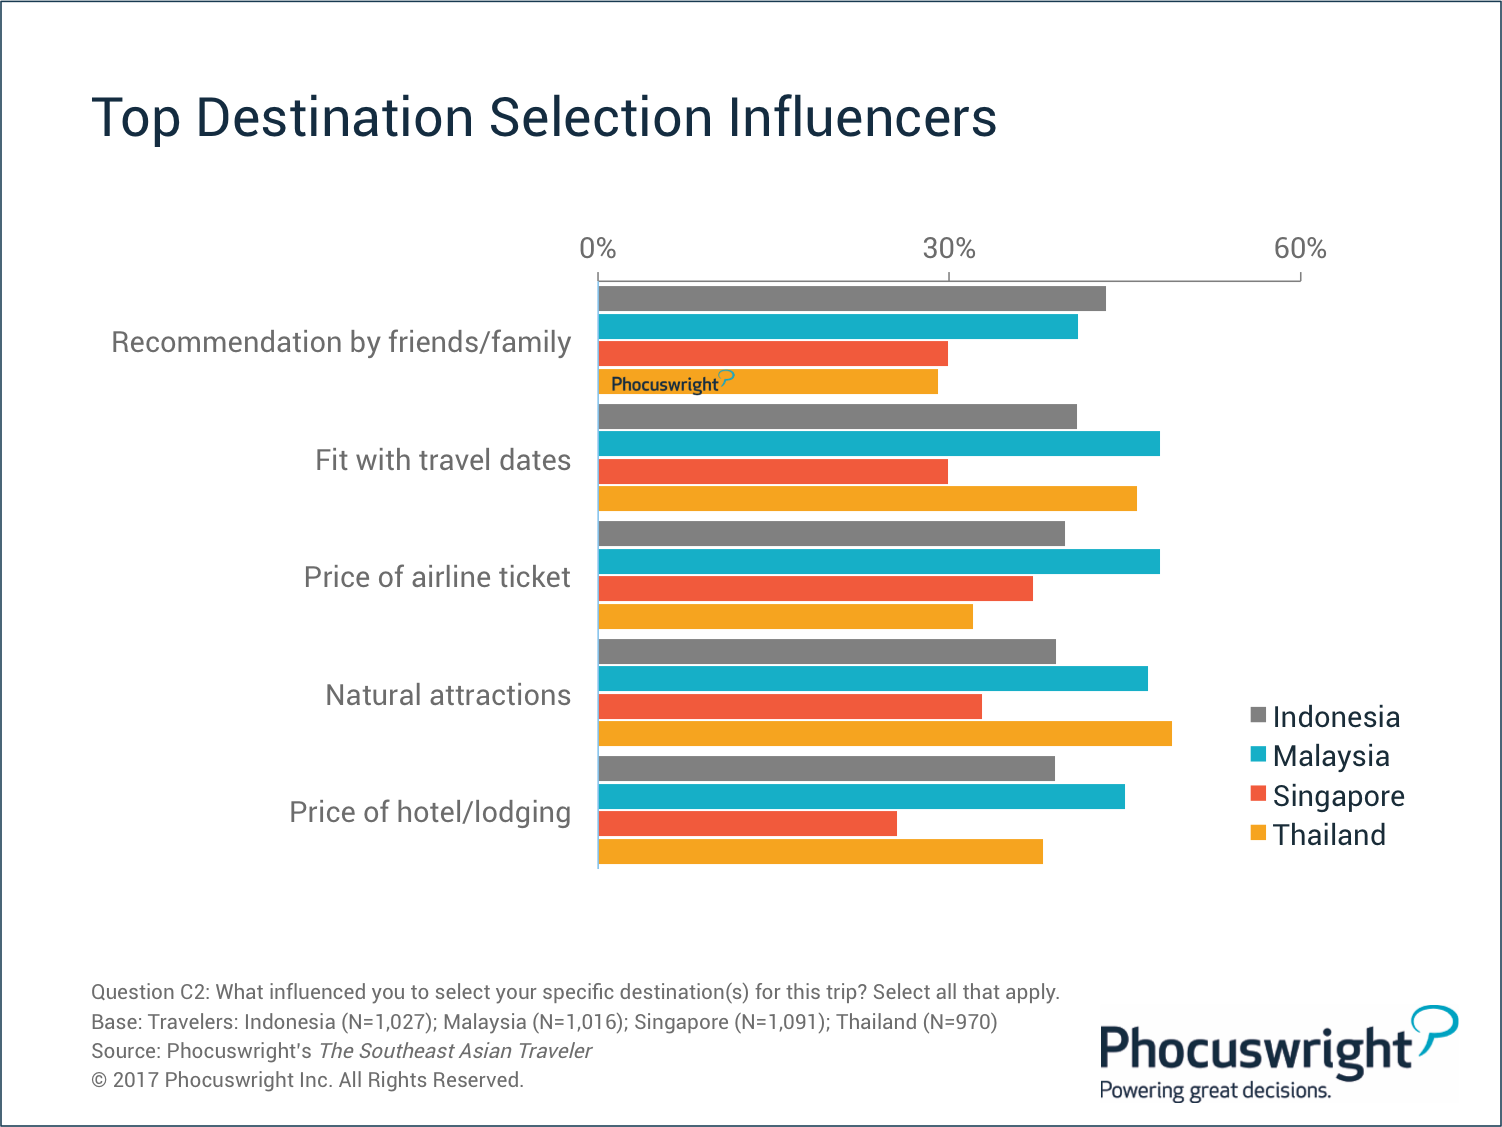 https://application-assets.s3.amazonaws.com/pcwi/production/email/research/Phocuswright-SEATopDestinationSelectionInfluencers.png